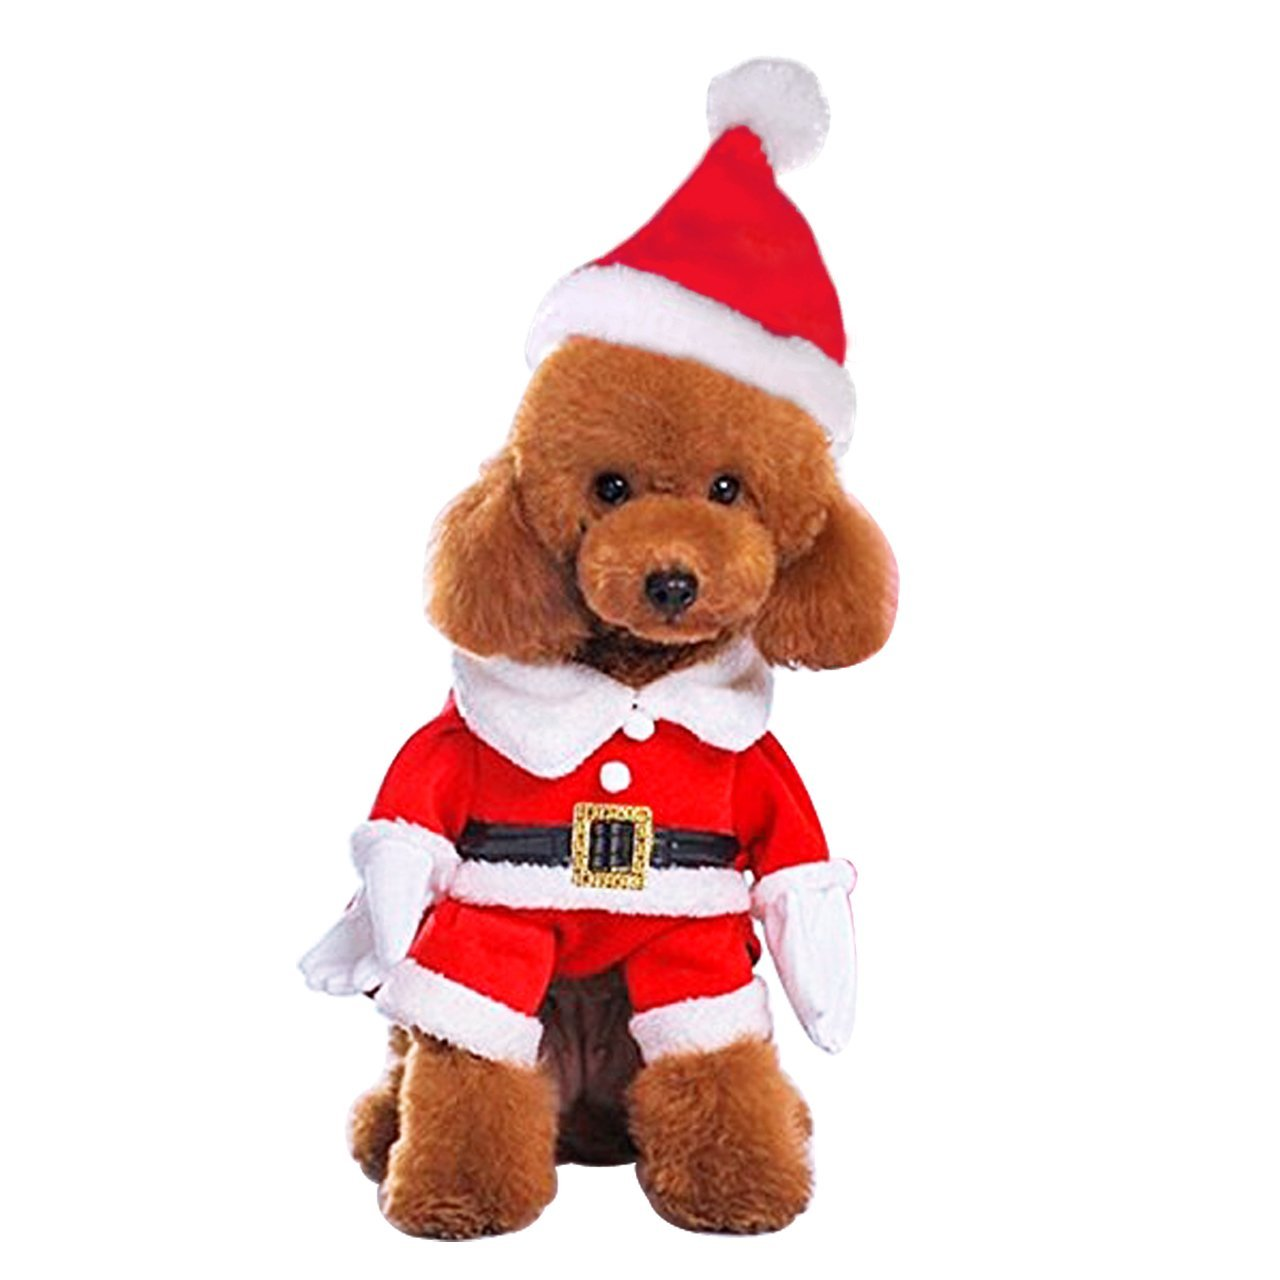 Santa Claus Costume S for 3.05.5 lbs Santa Claus Costume S for 3.05.5 lbs Mogoko Dog Cat Christmas Santa Claus Costume, Funny Pet Cosplay Costumes Suit with a Cap, Puppy Fleece Warm Outfit Apparel Festival Clothes